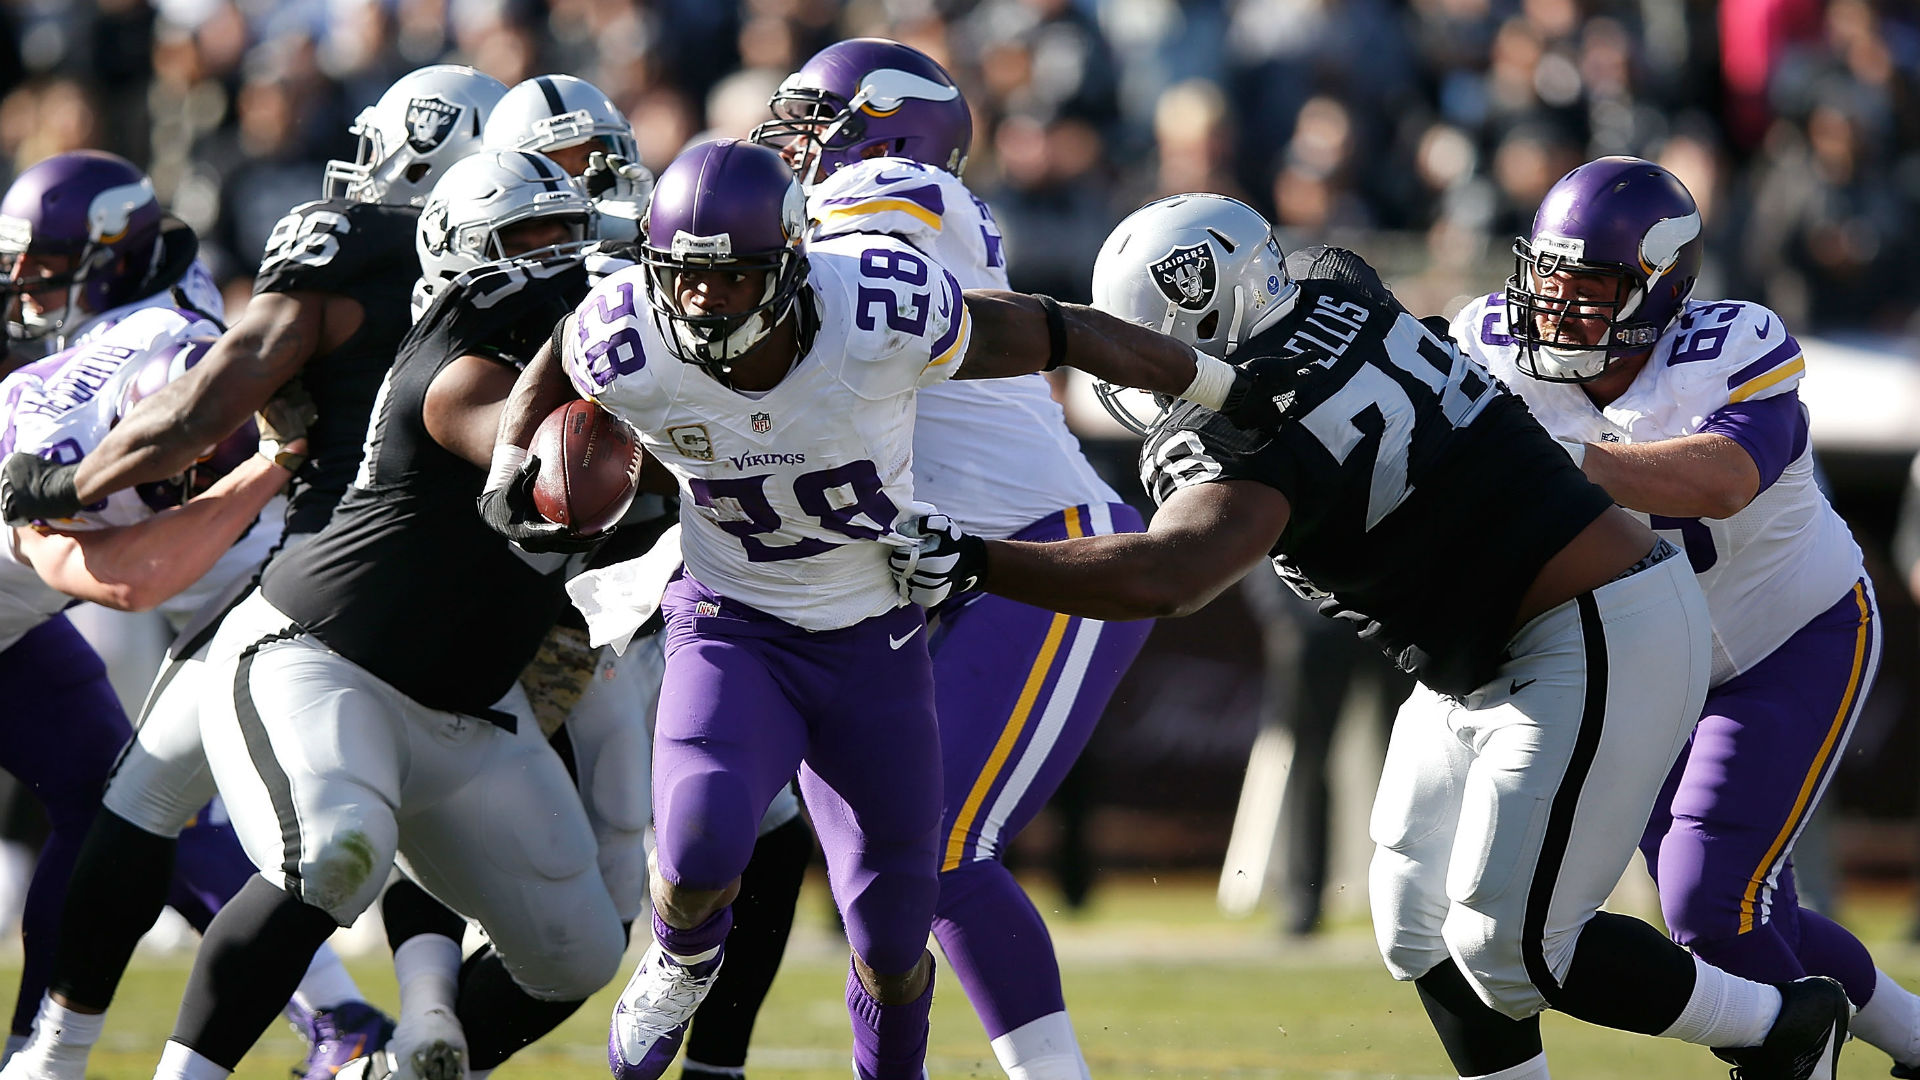 Watch out adrian peterson reaching new levels nfl sporting news